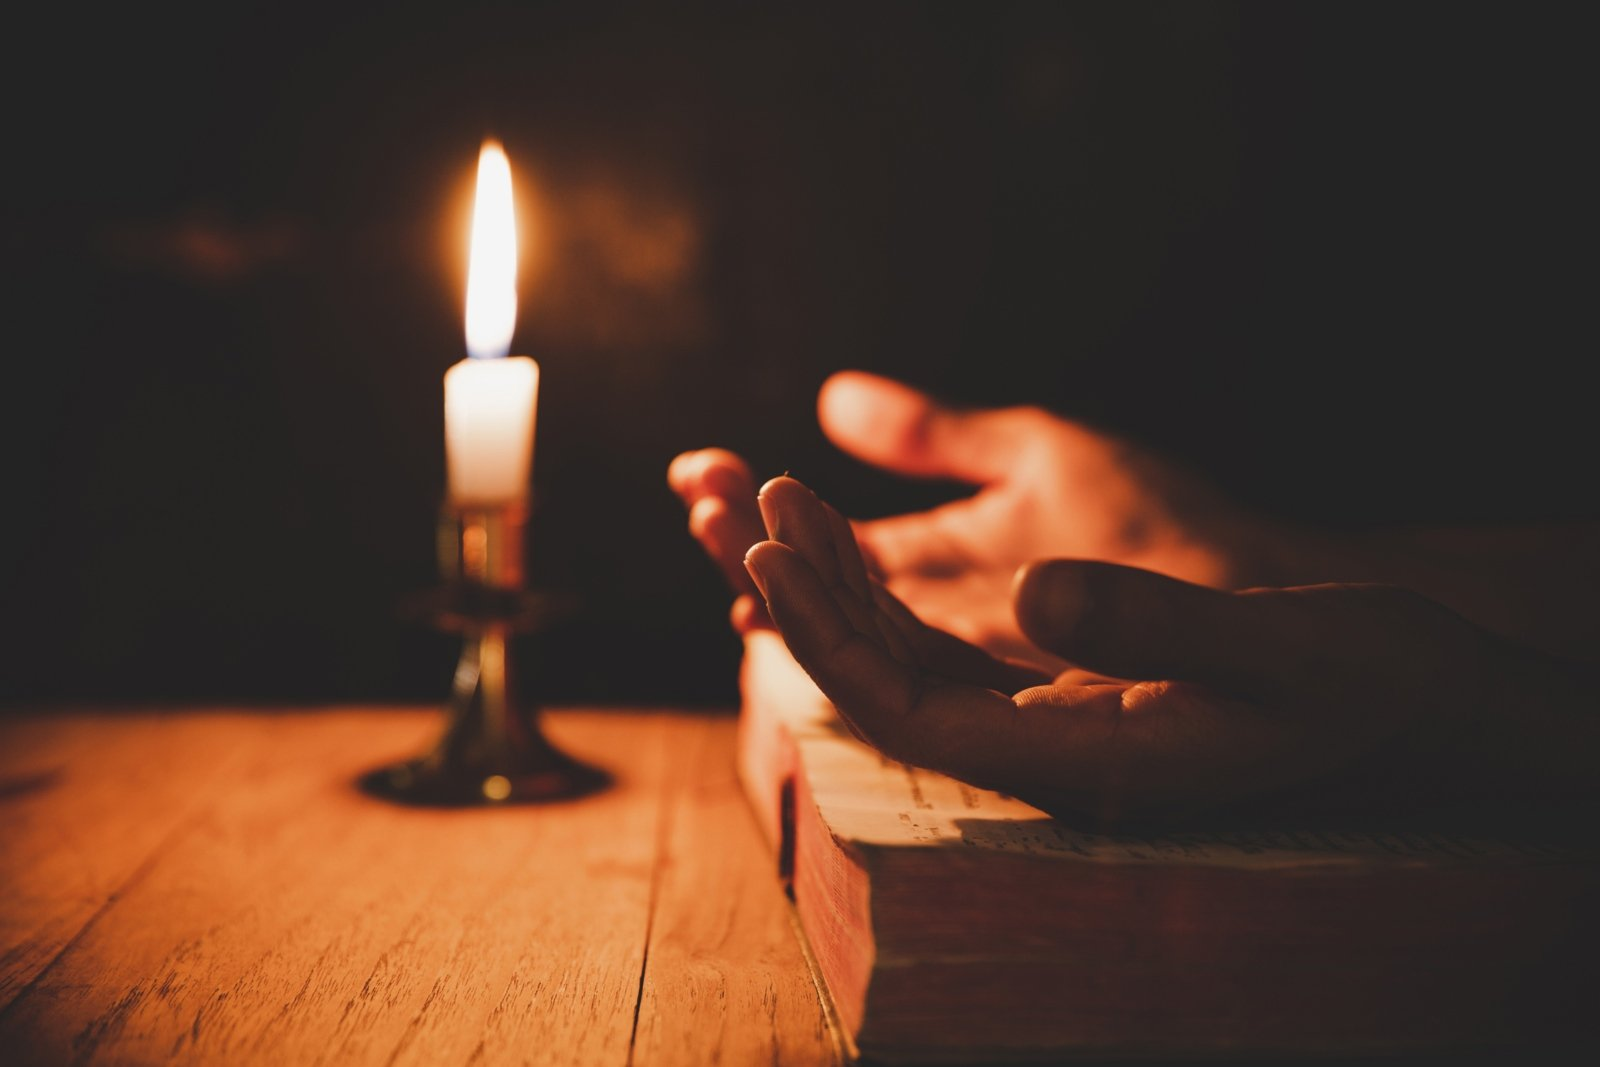 close-up-man-s-hand-is-praying-church-with-lit-candle (c) canva.com